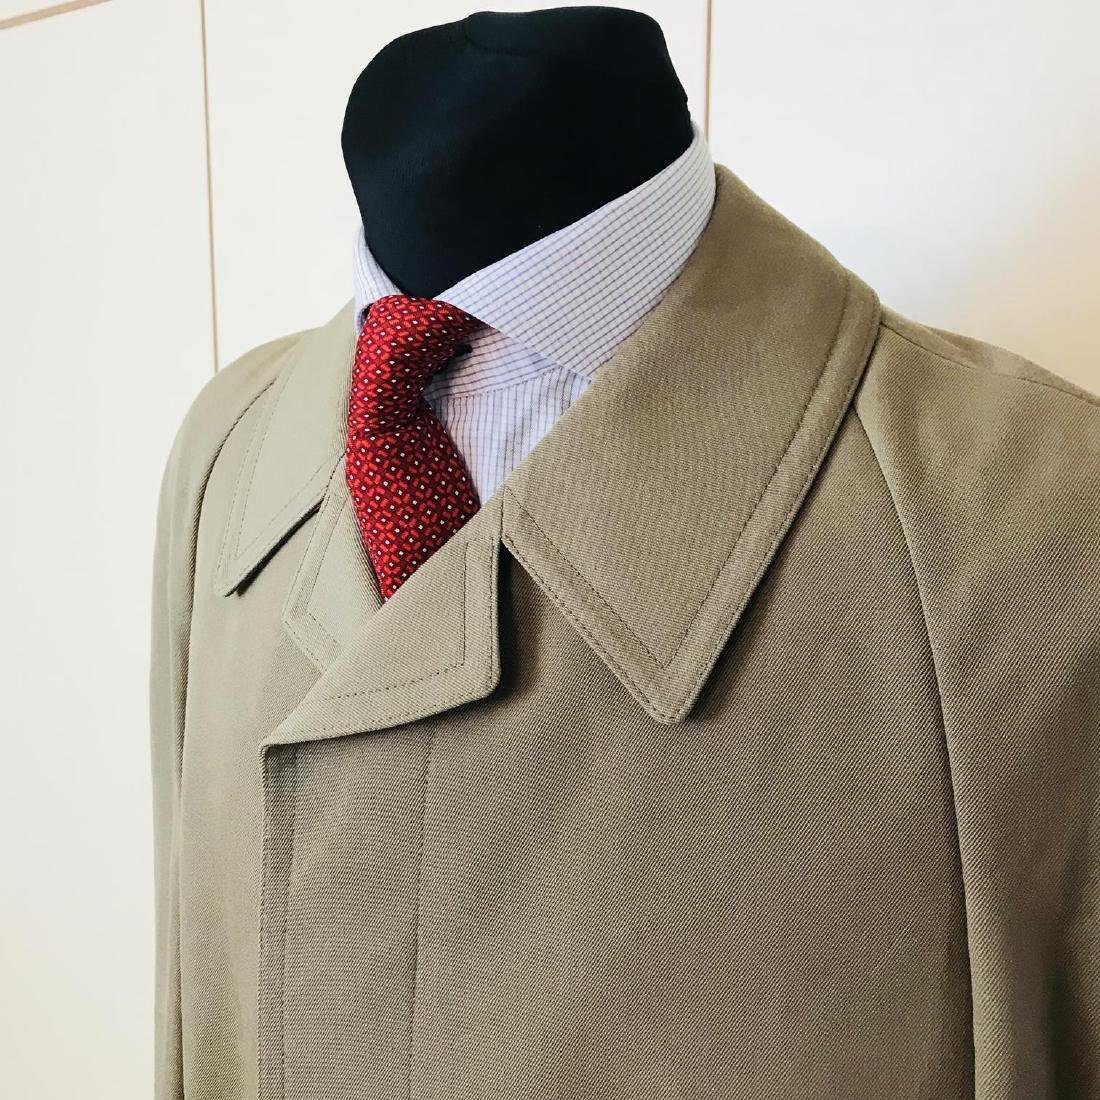 Vintage Men's Trench Coat Size US 38 EUR 48 - 4